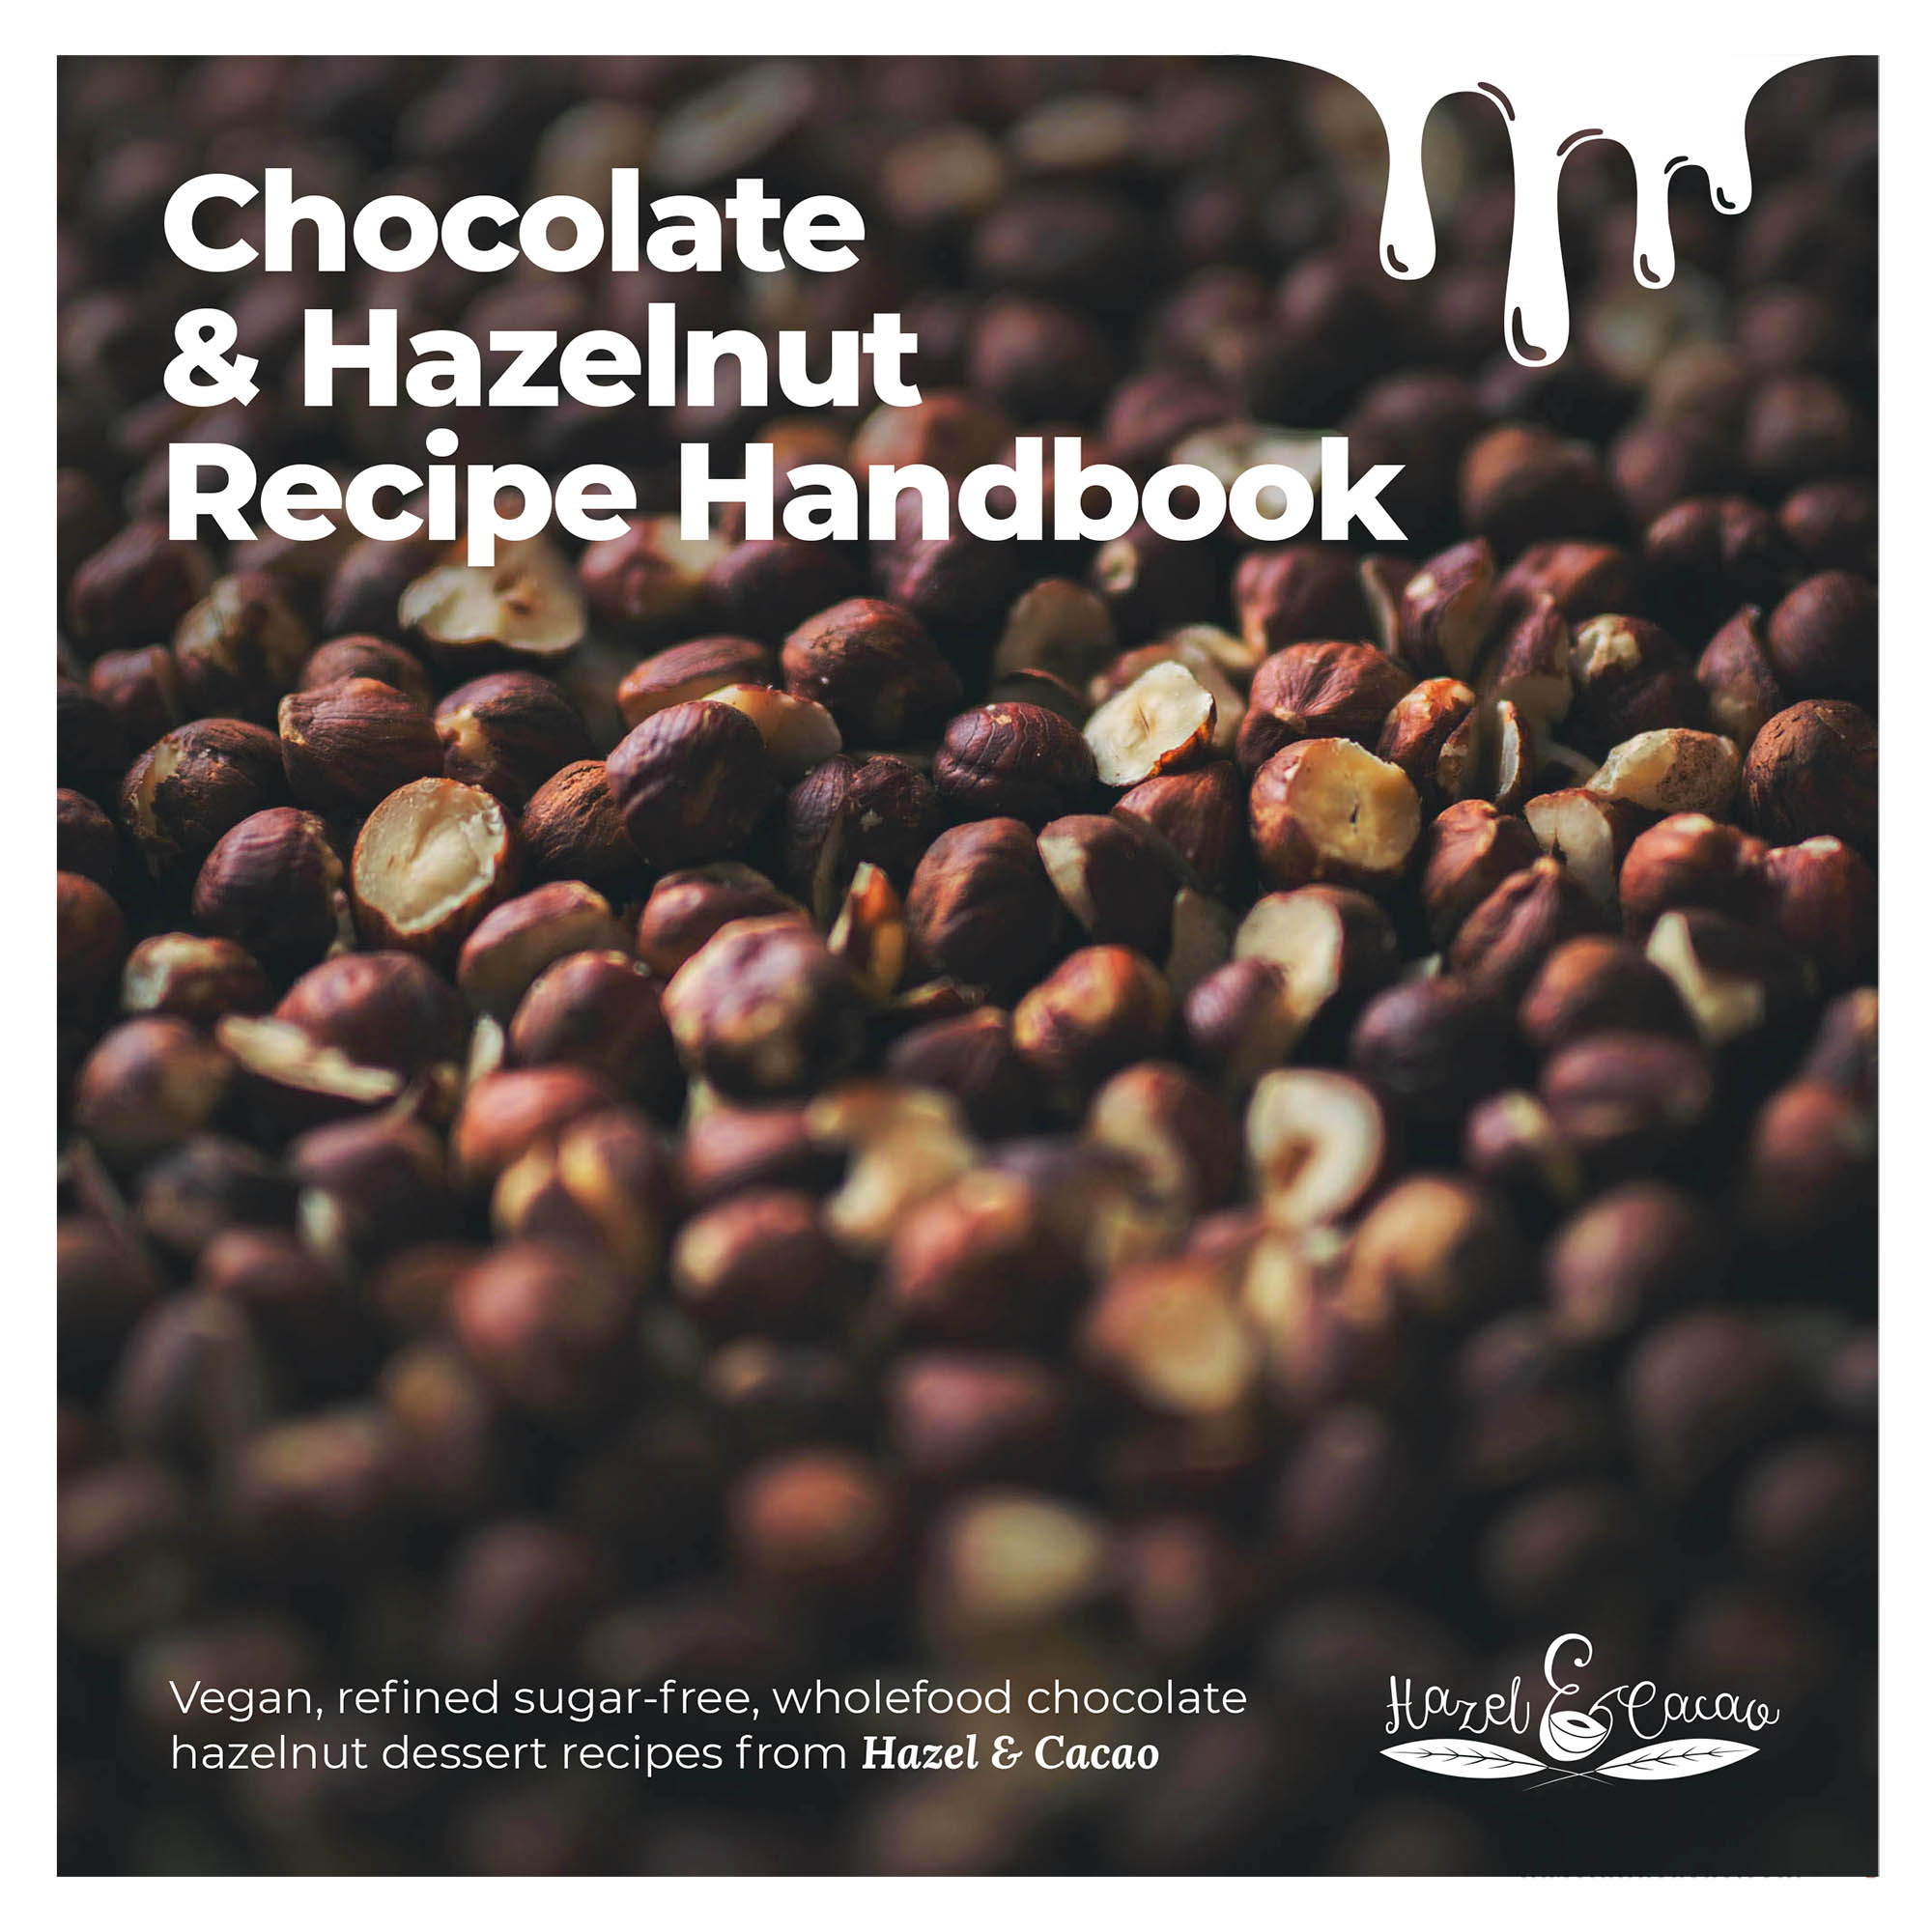 Chocolate & Hazelnut Recipe eBook – Out Now!